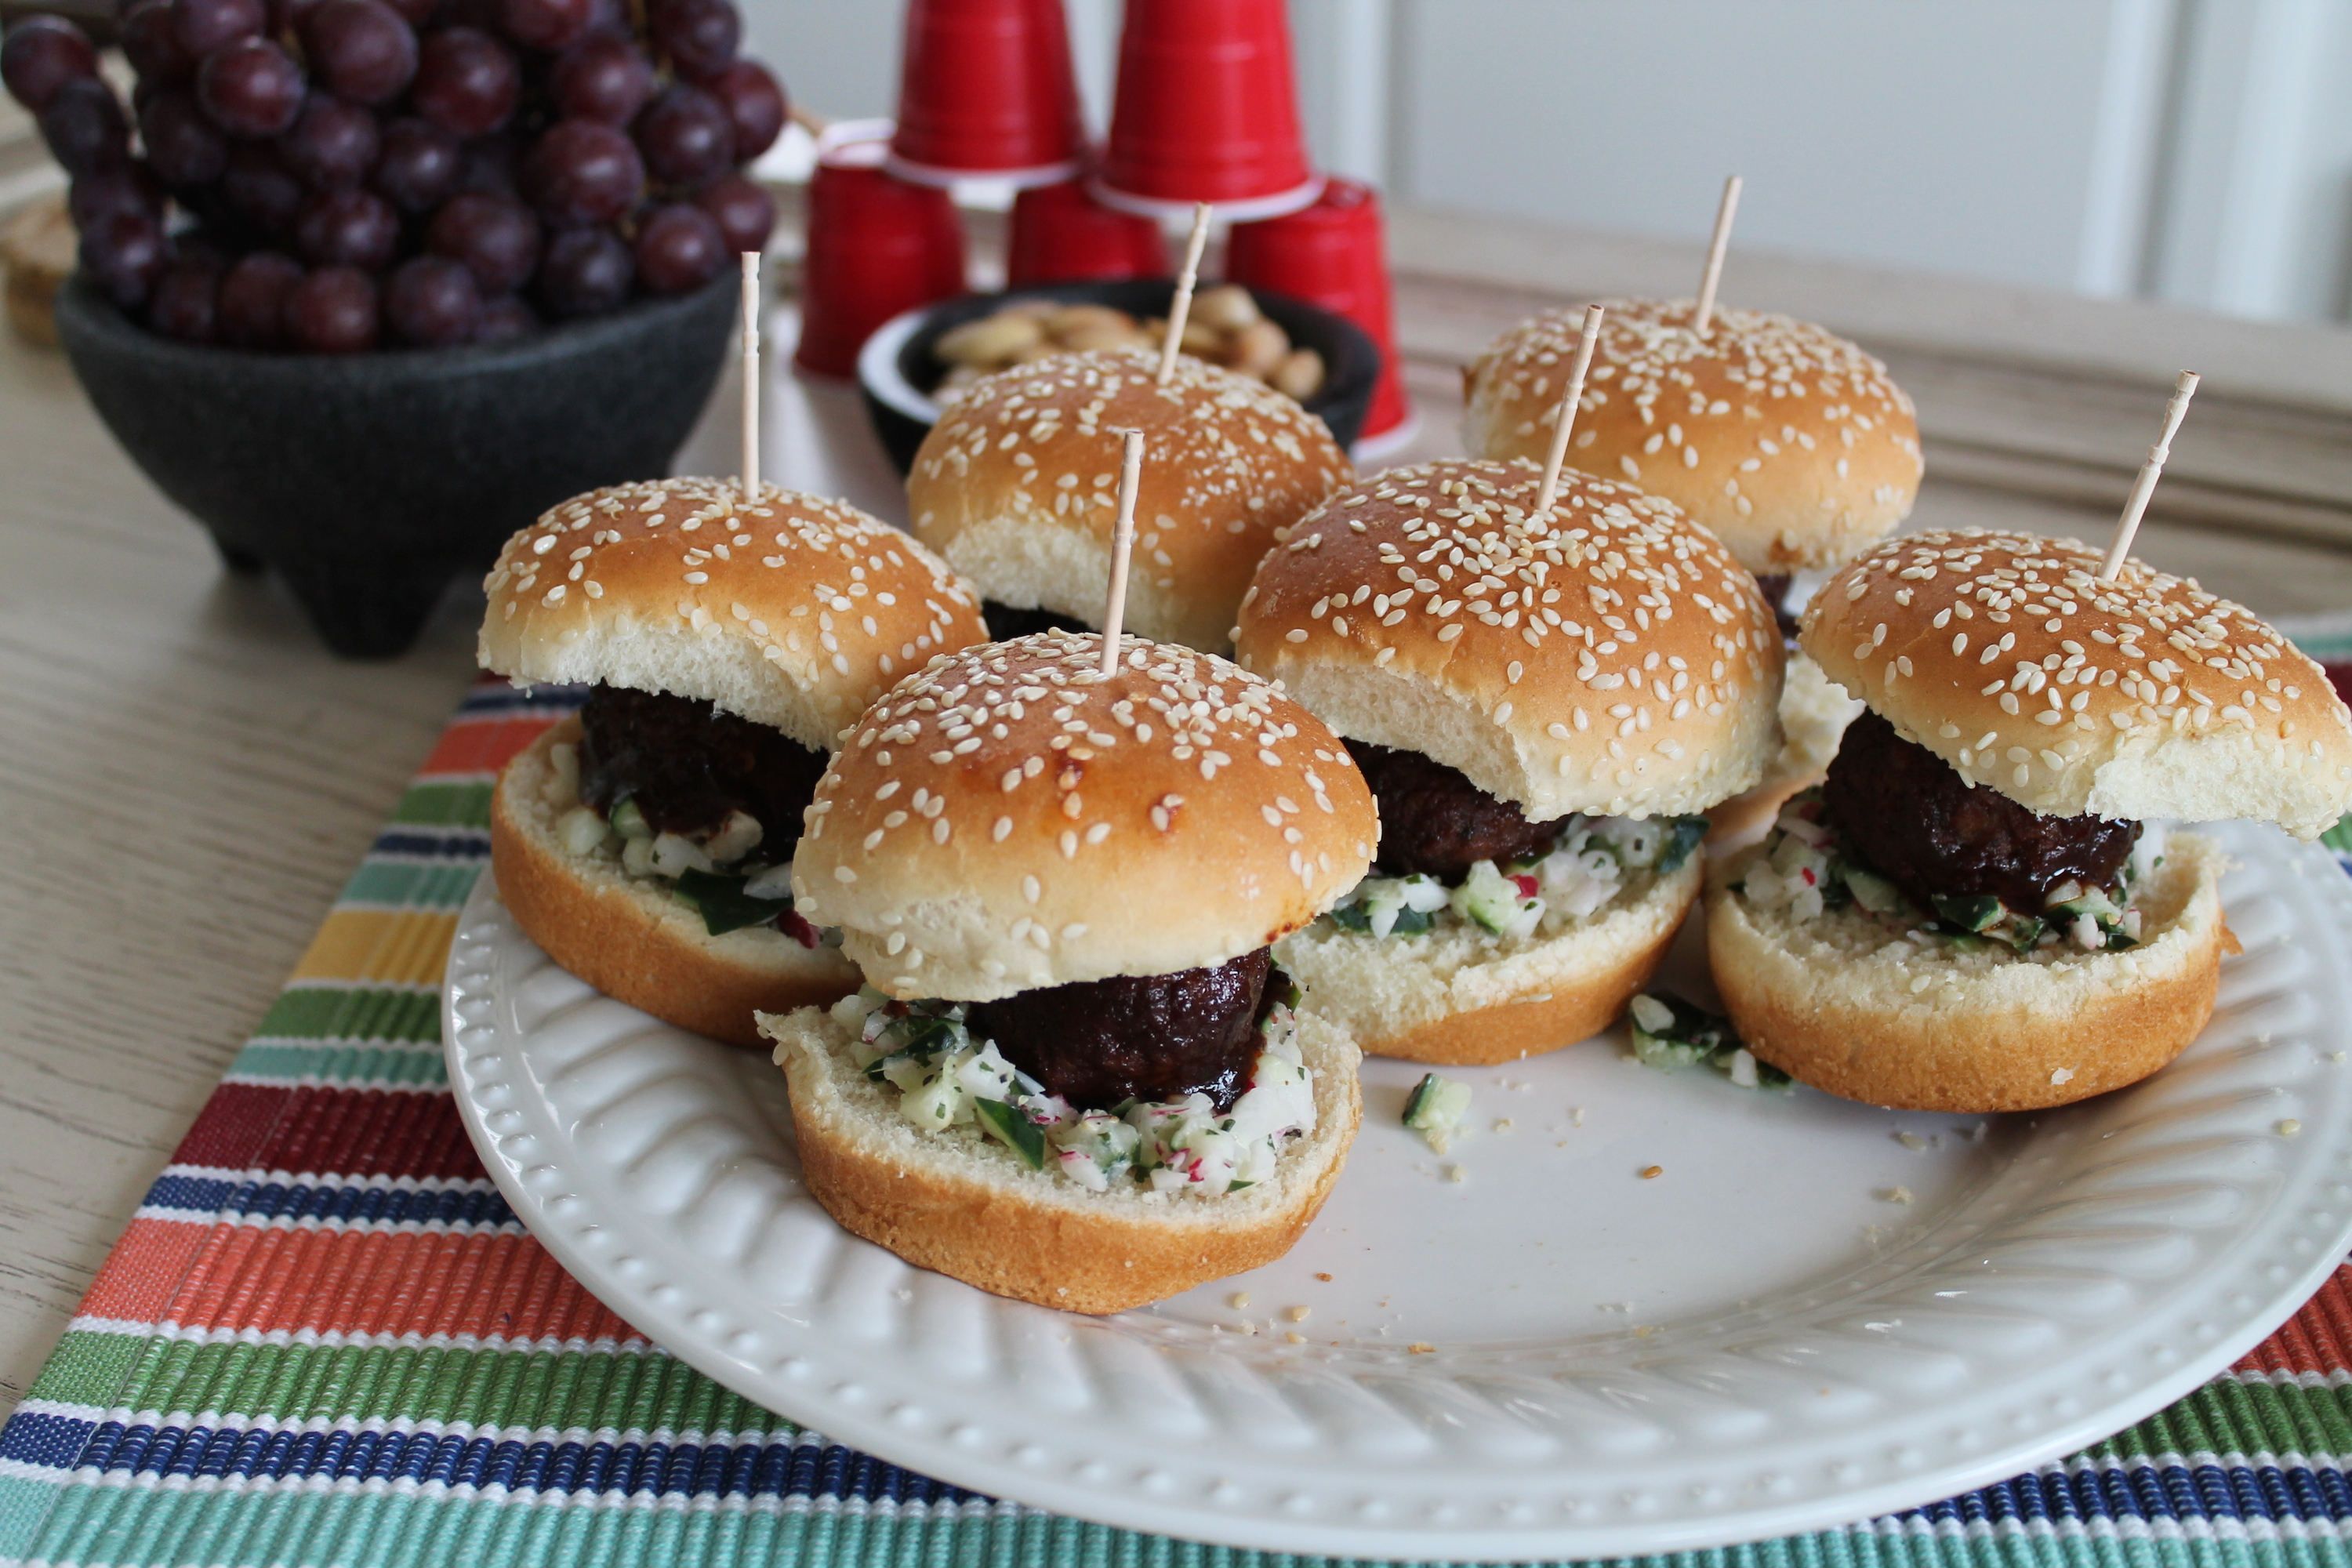 Fellowship of the Vegetable Superbowl Vegan BBQ Sliders 2